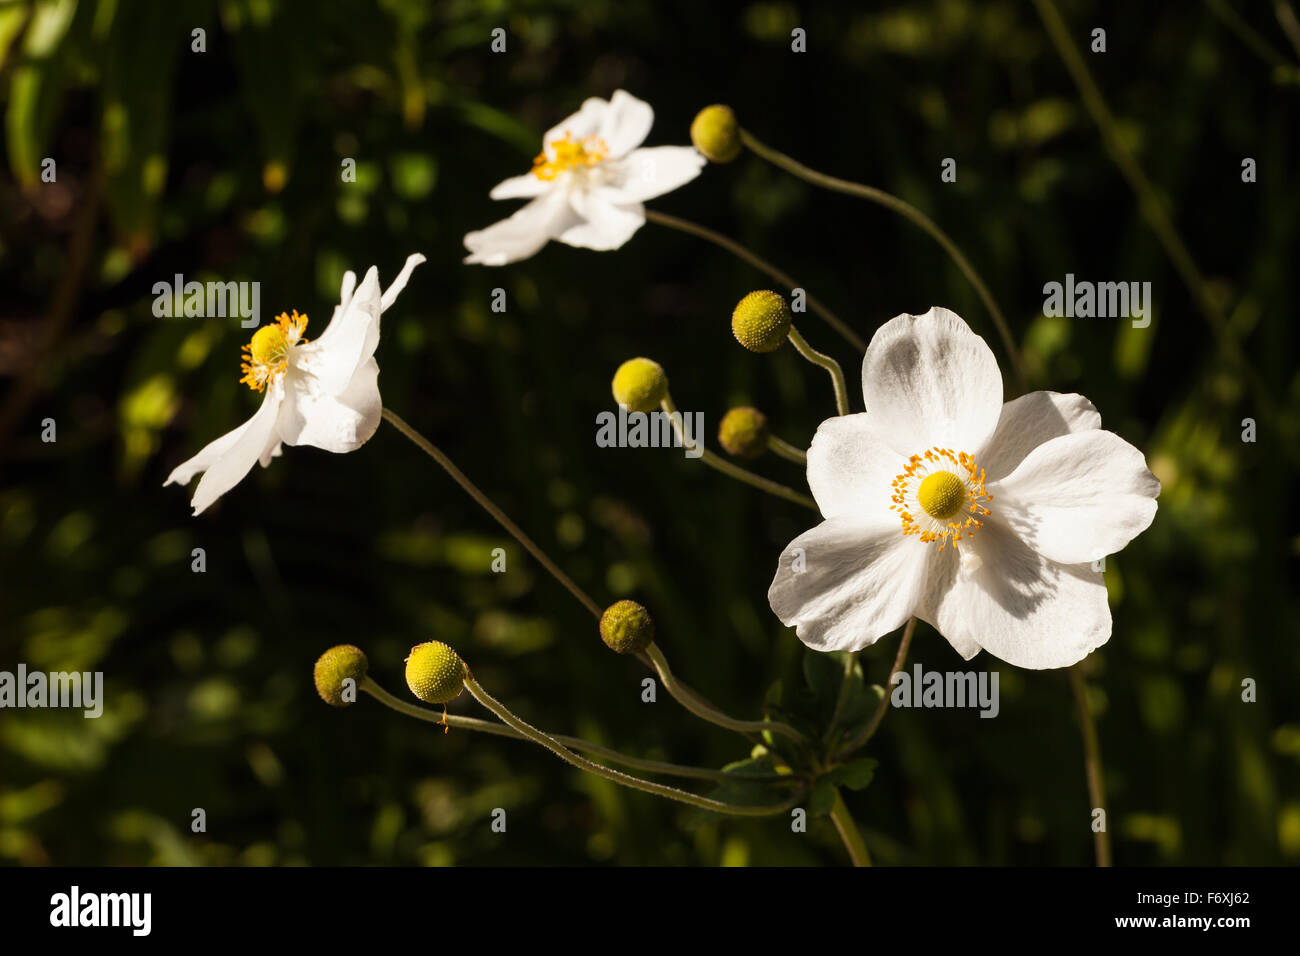 White flowers with yellow centers stock photos white flowers with white flowers with yellow centers flowering on isles of scilly stock image mightylinksfo